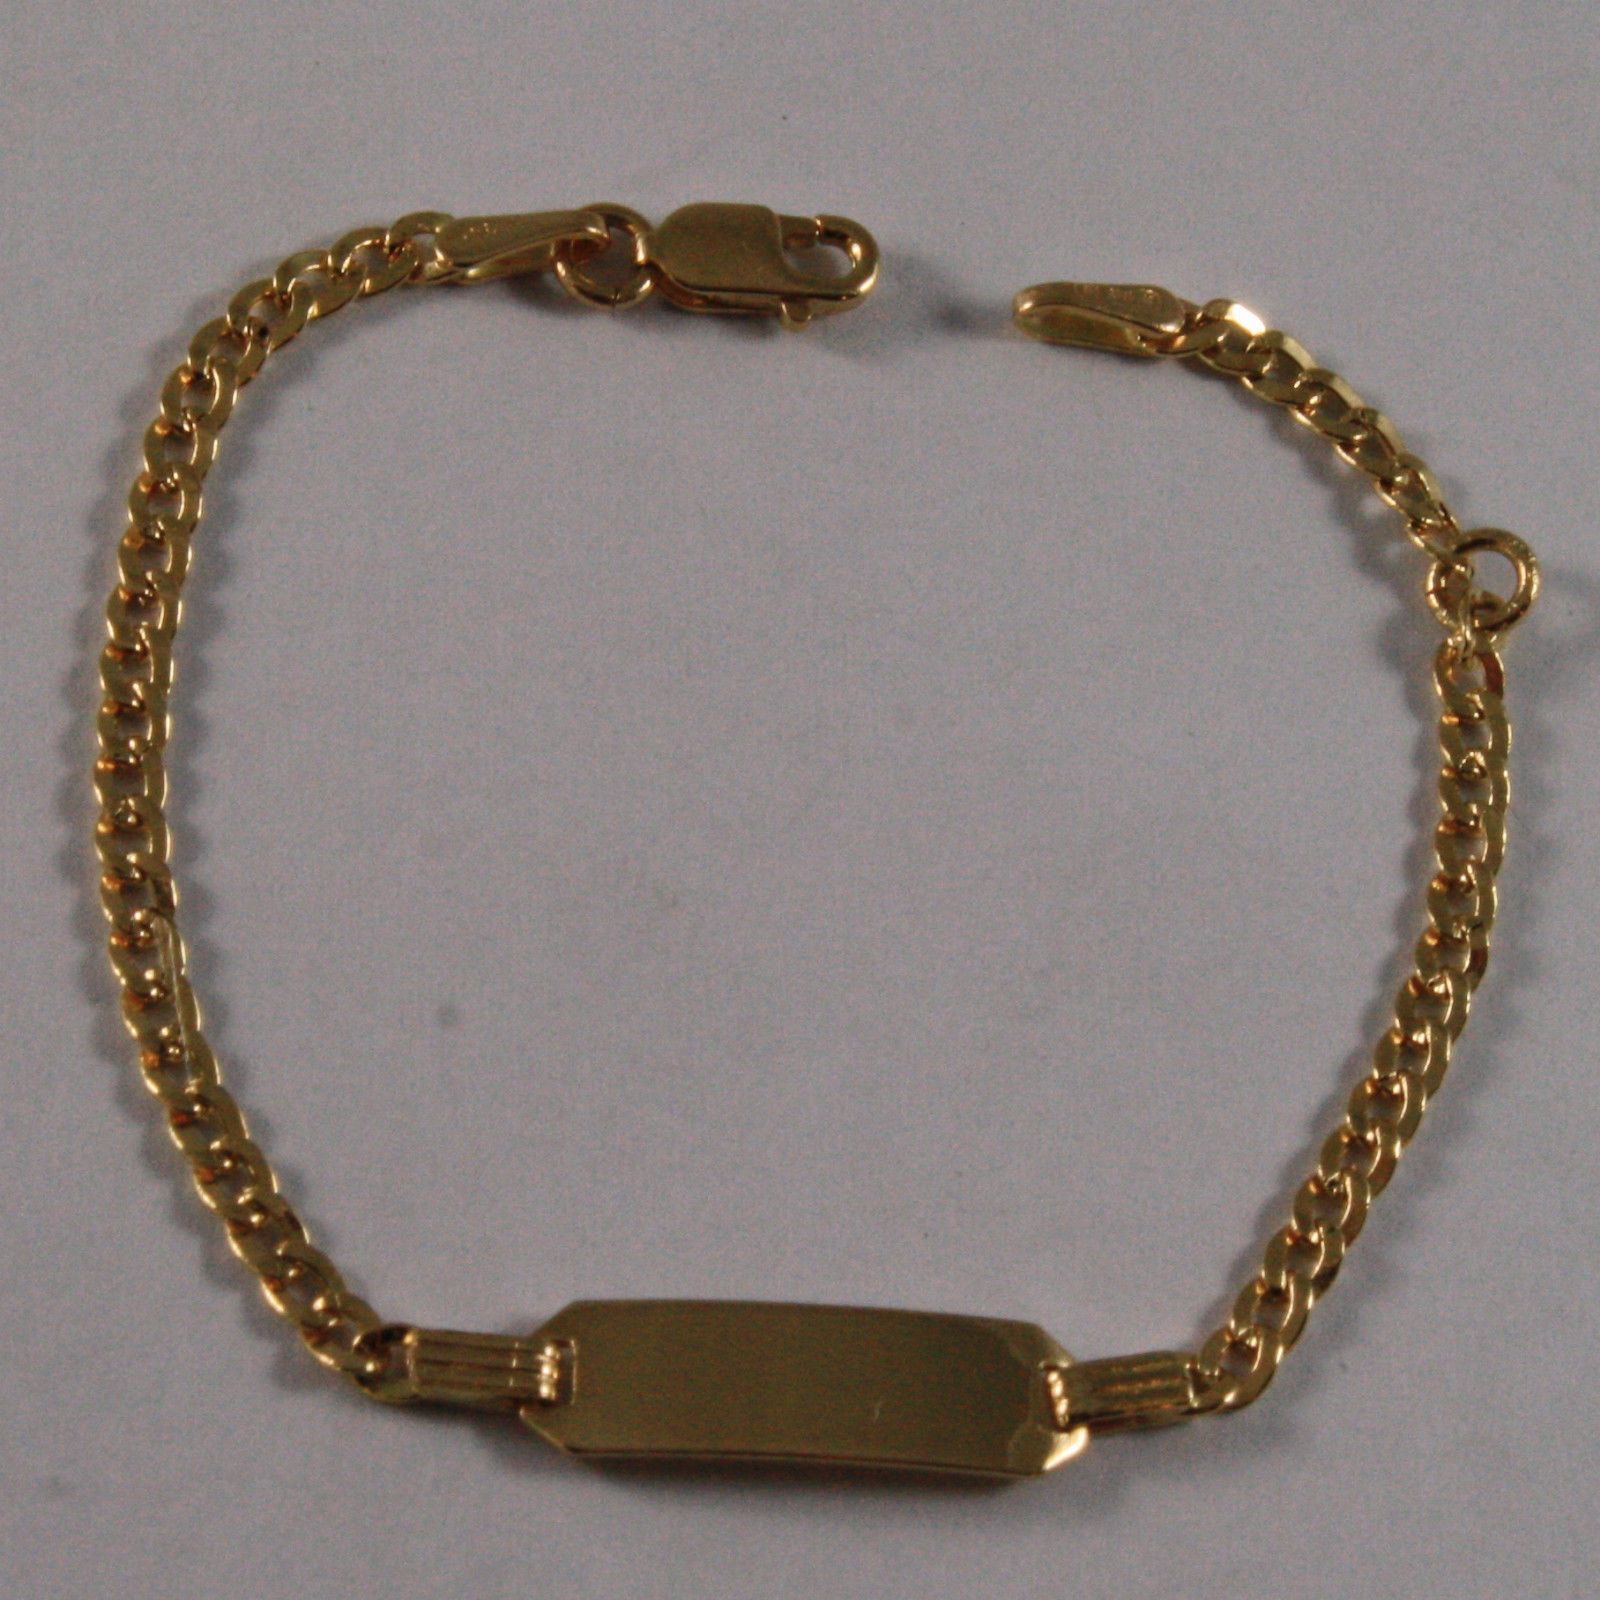 SOLID 18K YELLOW GOLD BRACELET, 5.51 INCHES, ENGRAVING CLASSIC PLATE, FOR CHILD.